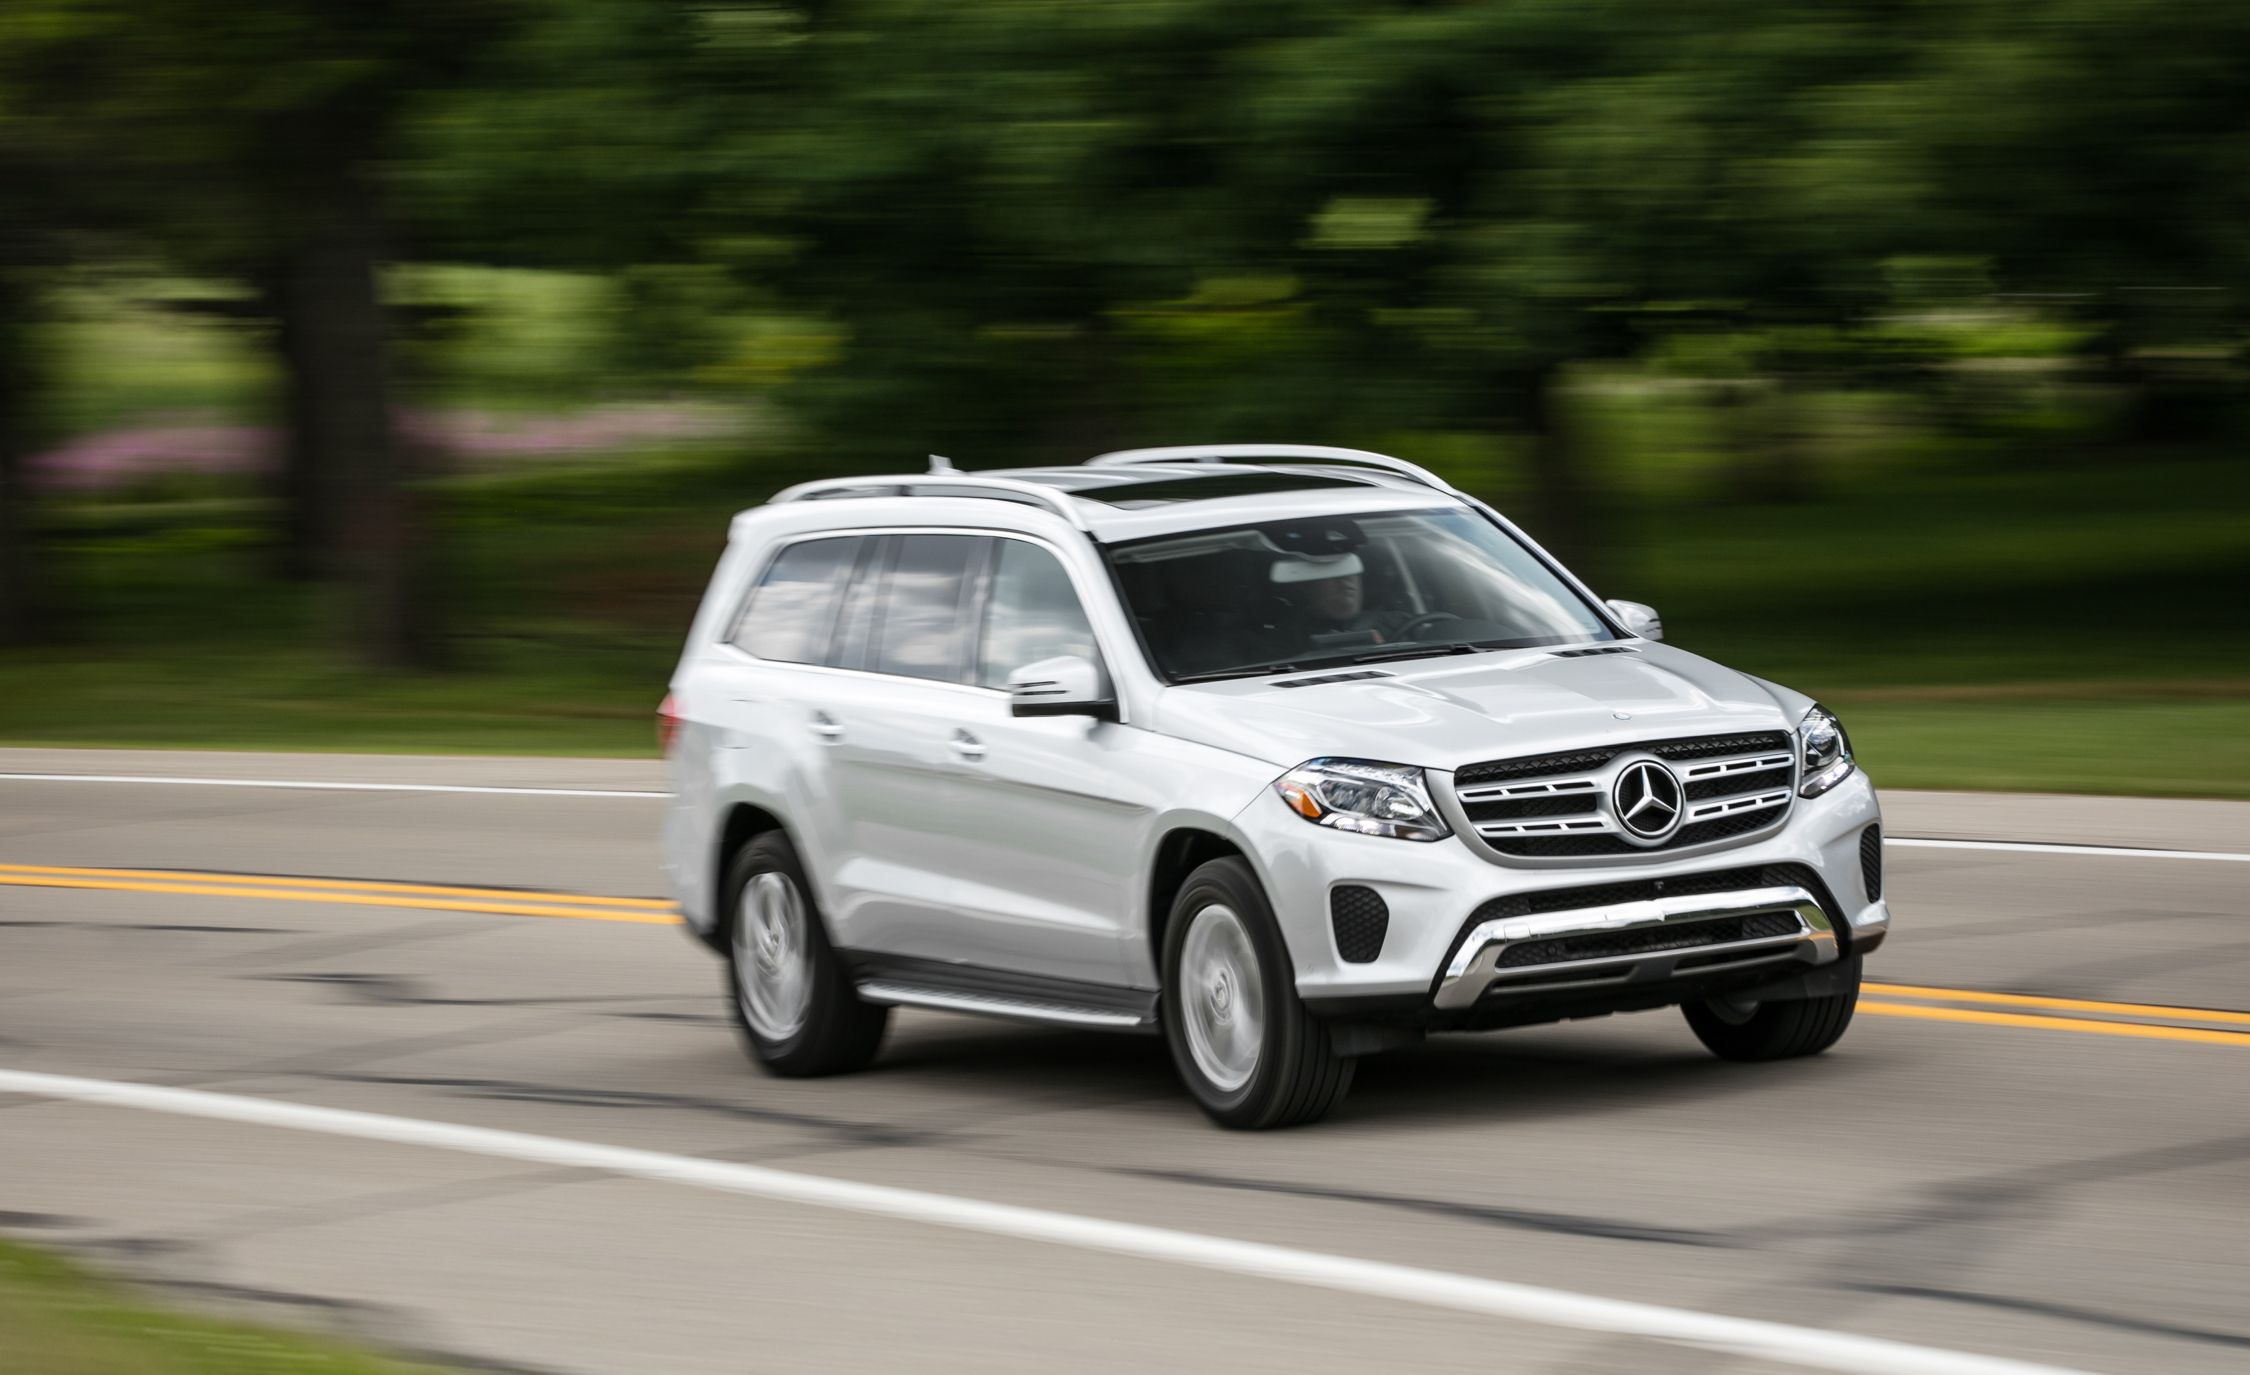 2017 mercedes benz gls class pictures photo gallery for 2017 mercedes benz gls 450